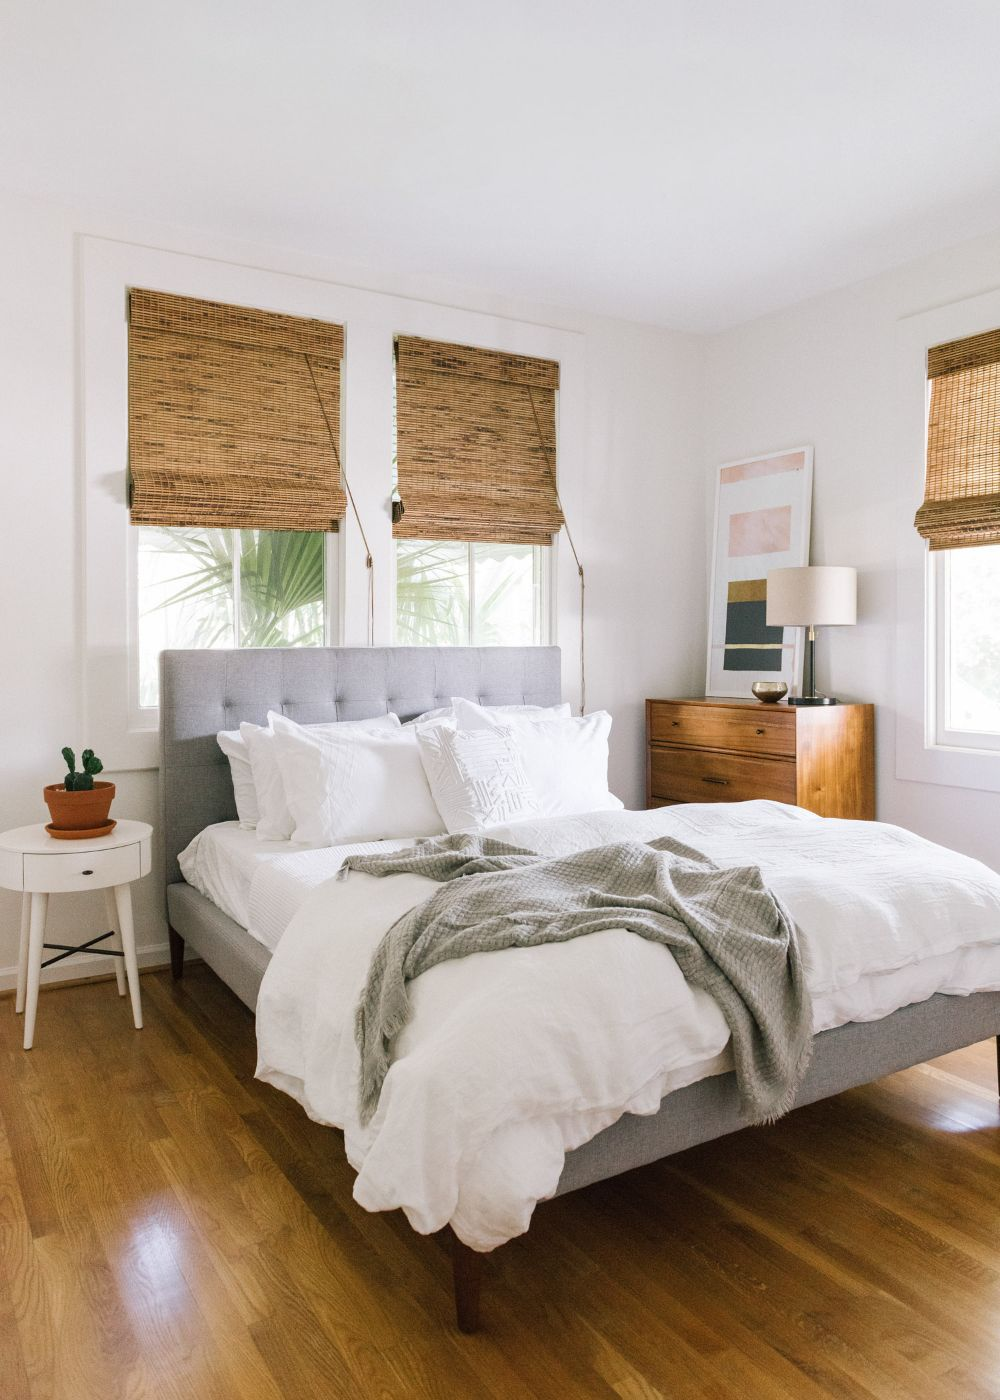 Best of 2019: Our Favorite Guest Rooms of the Year - Front + Main